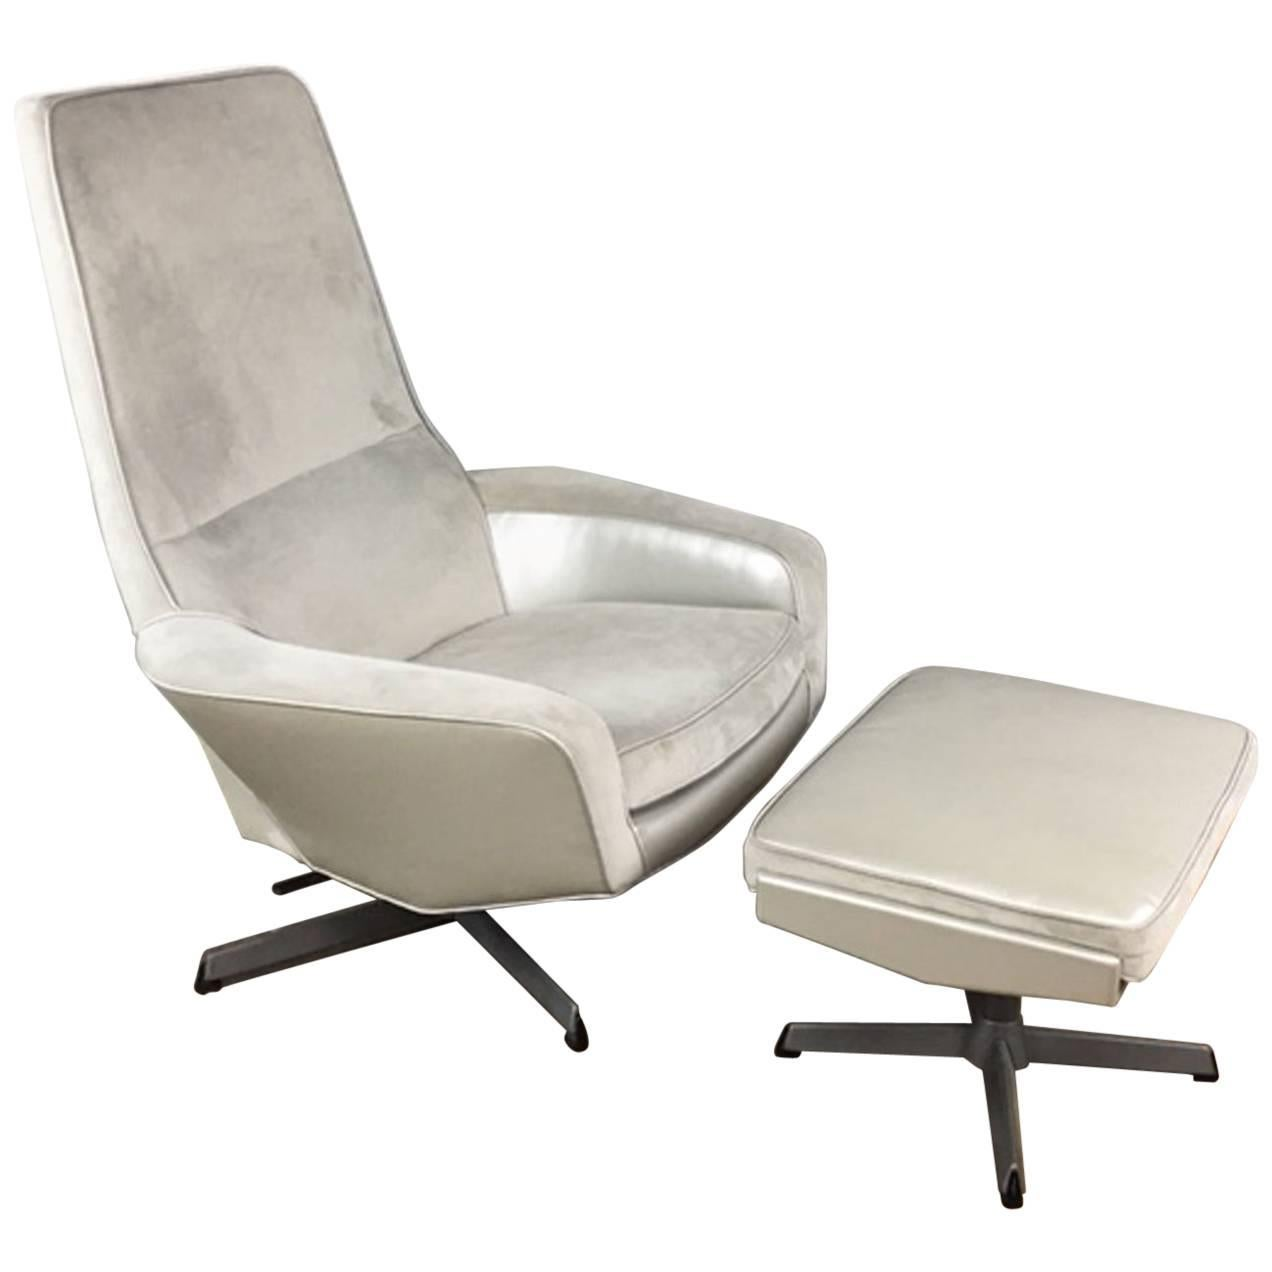 Kofod Larsen High Back Lounge Chair And Ottoman For Sale